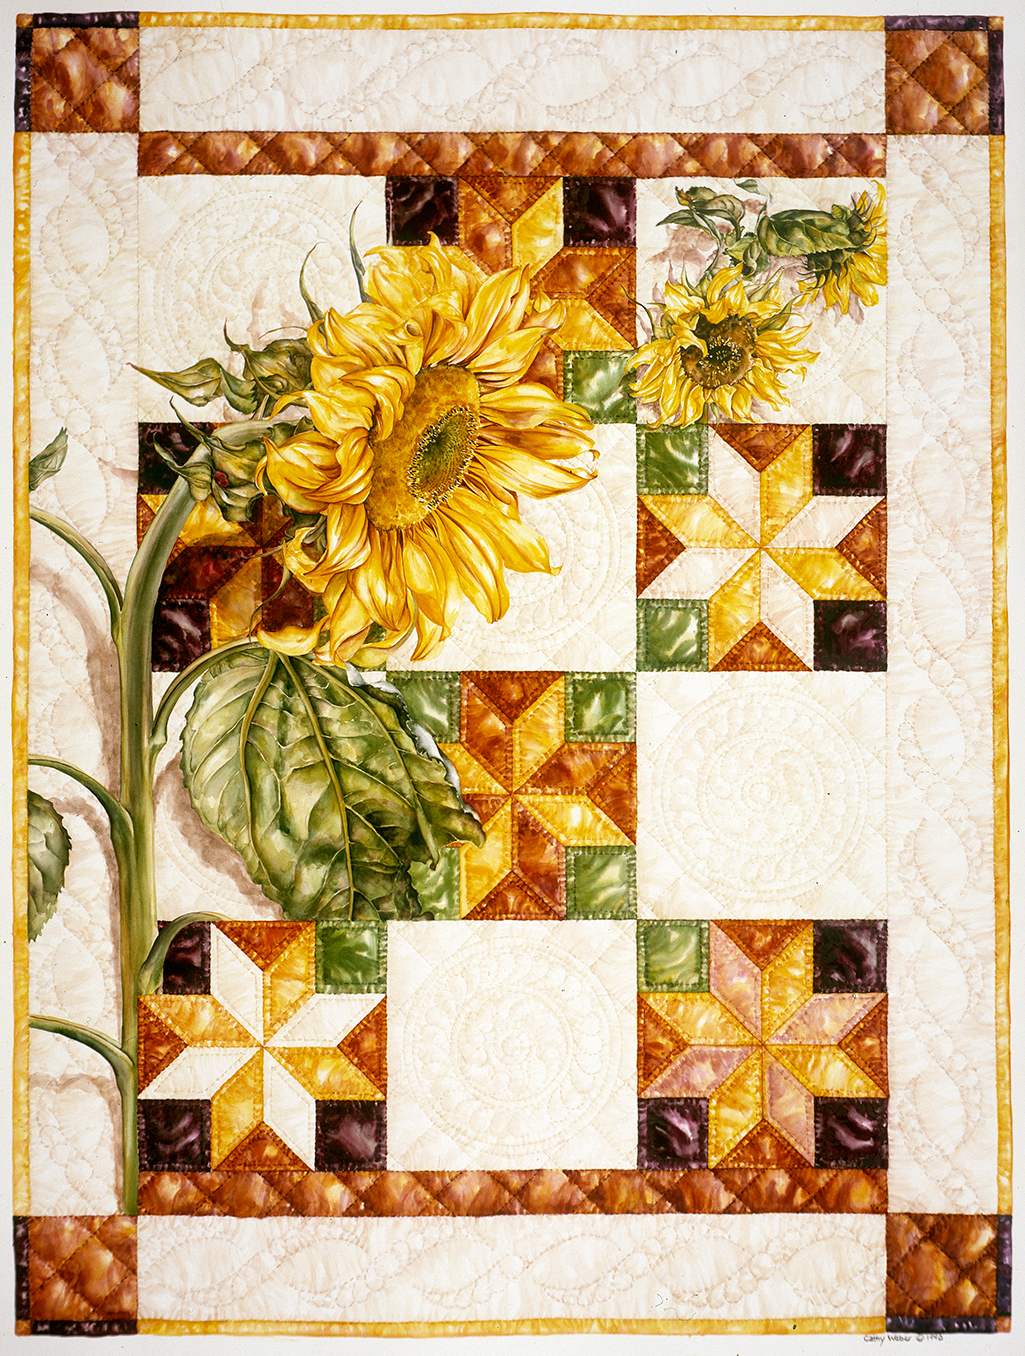 cathy weber - art - watercolor - sunflower - quilt - stitch - montana